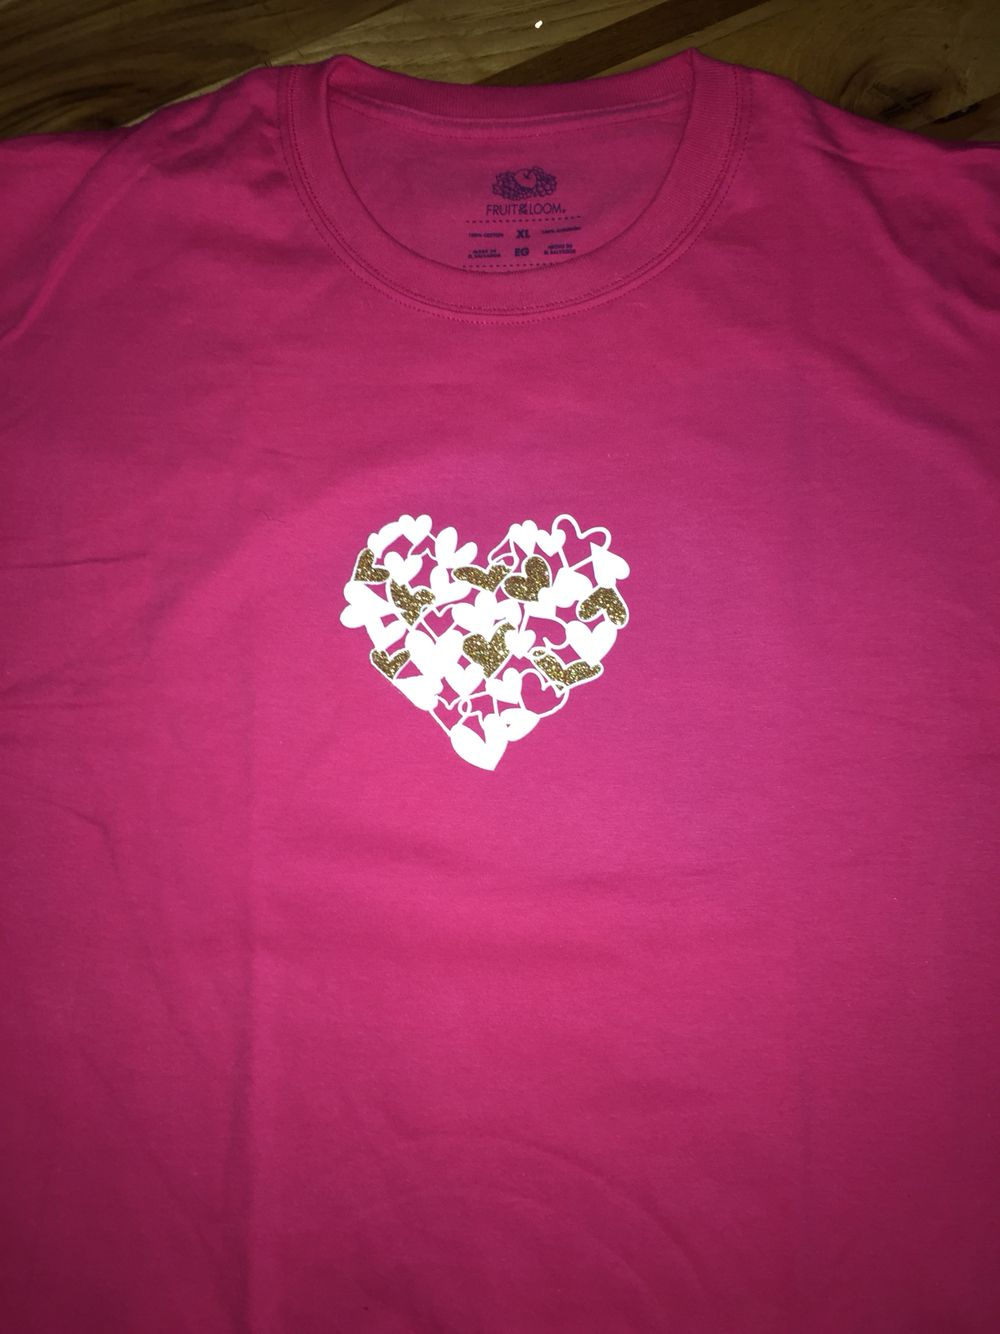 Hearts in heart: white/glitter gold adult t-shirt